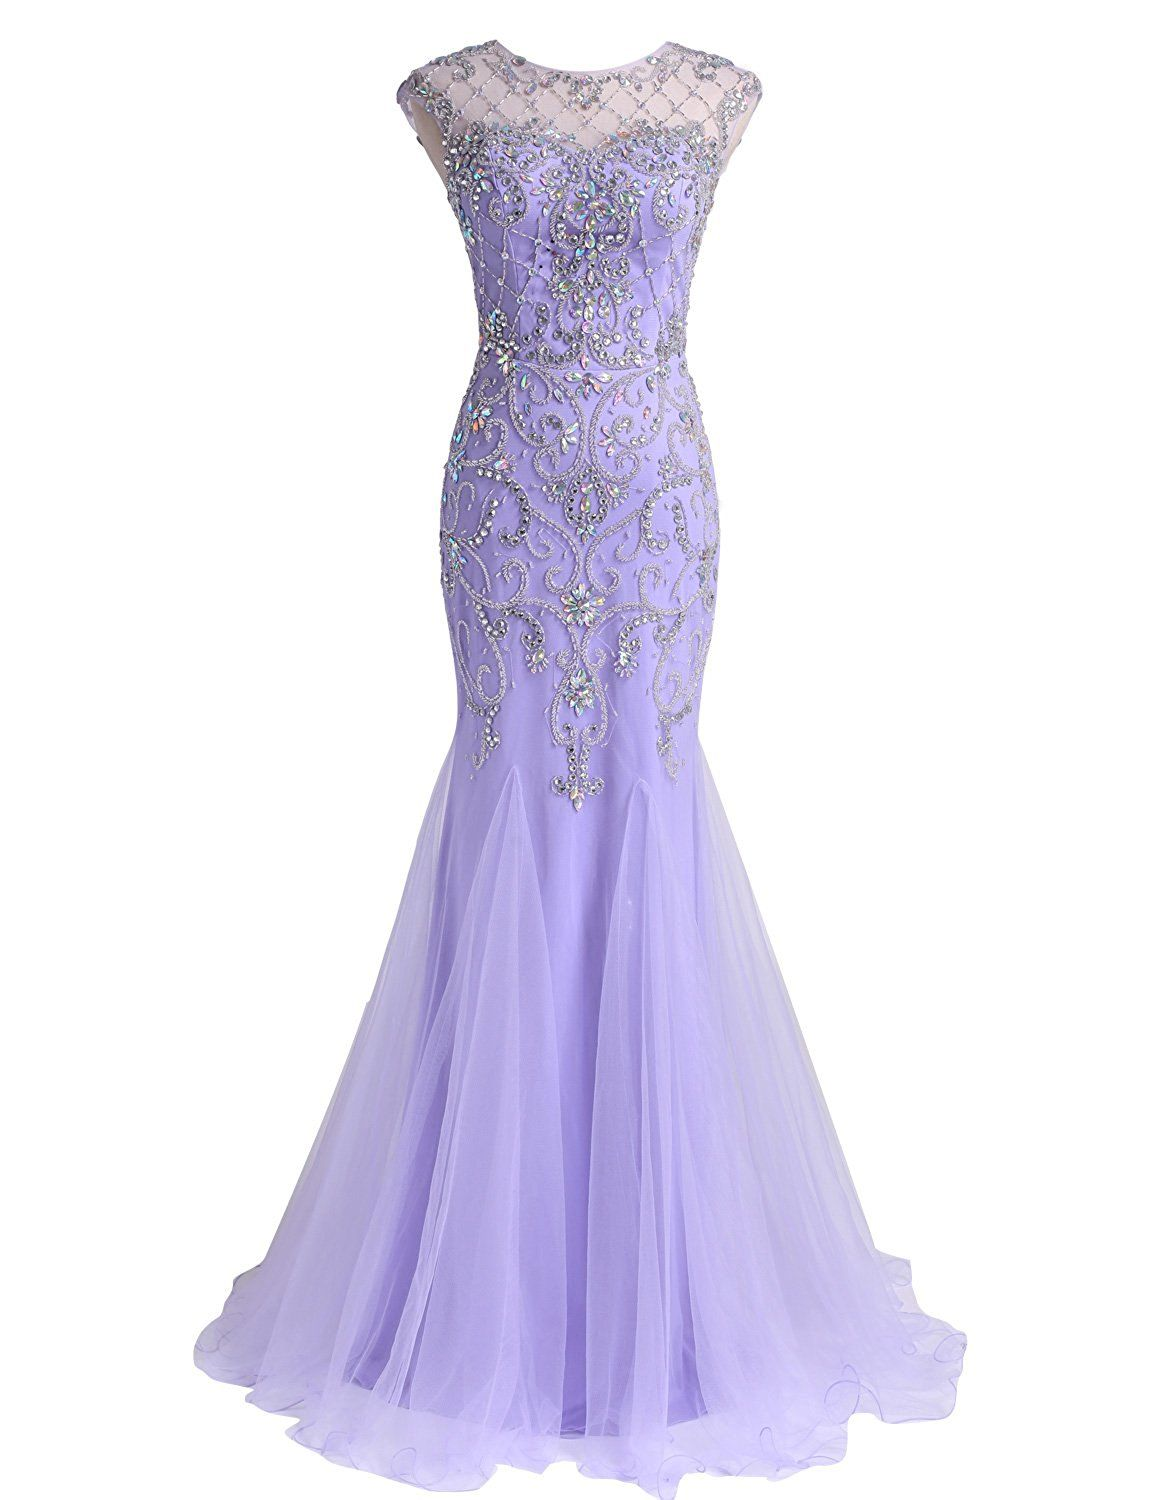 Lavender Beaded Mermaid Prom Dress with Illusion Sweetheart Neckline and  Sheer Open Back 99f31381d936